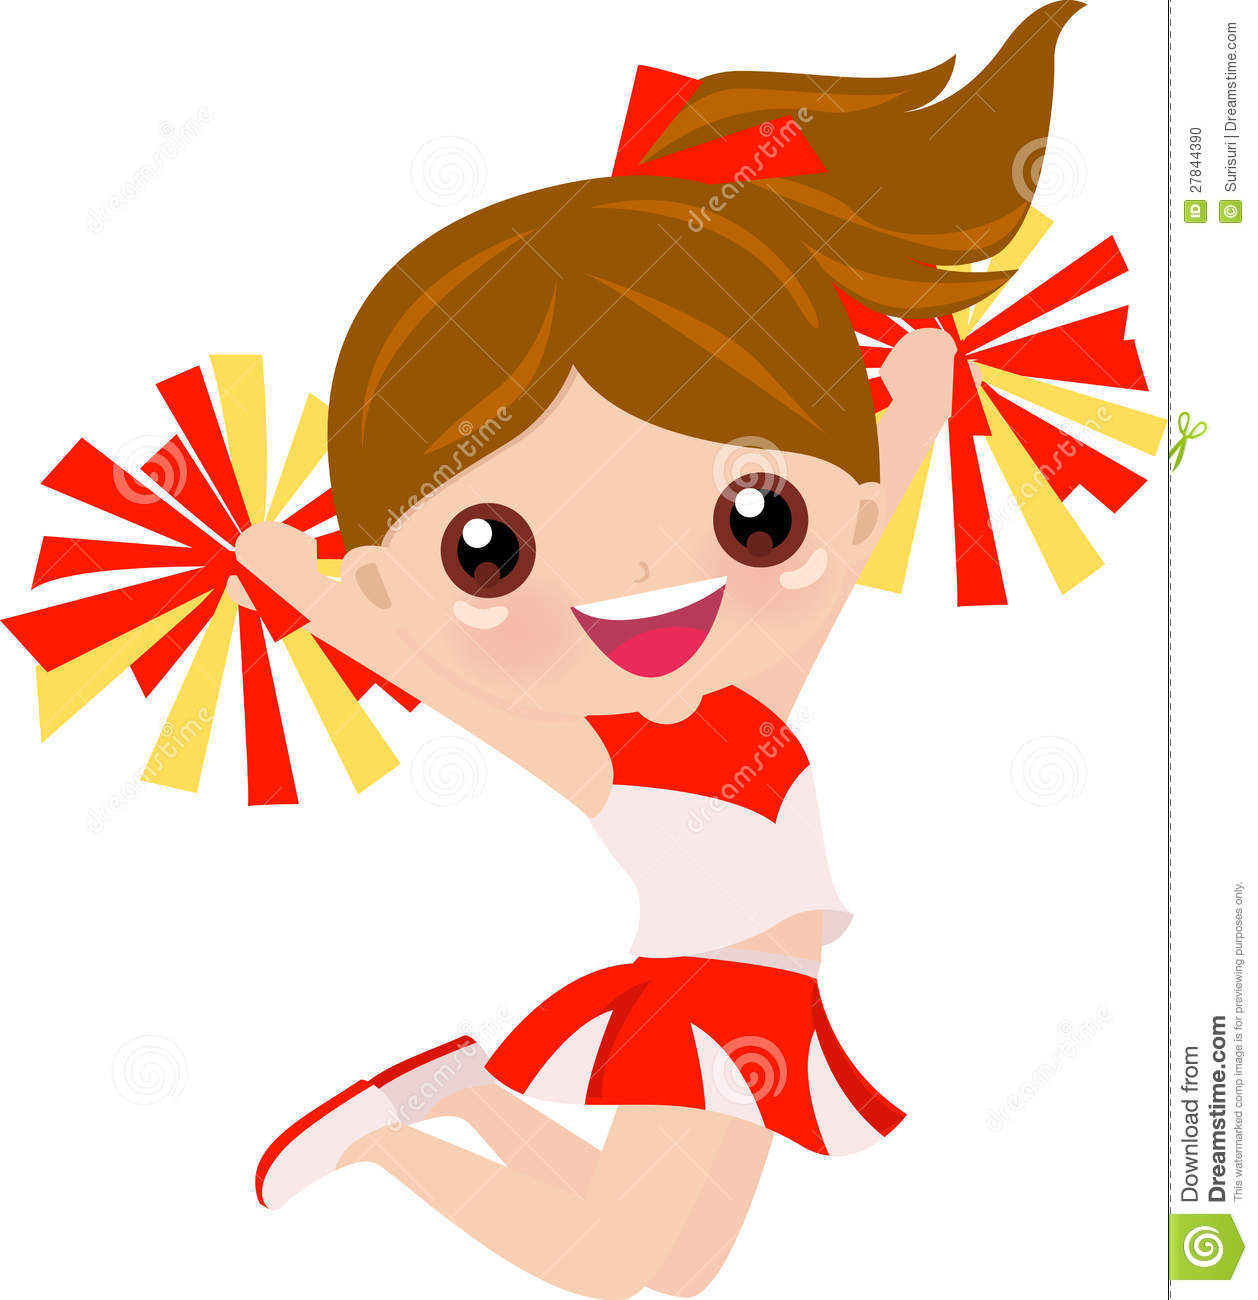 Cartoon Cheerleading Images.